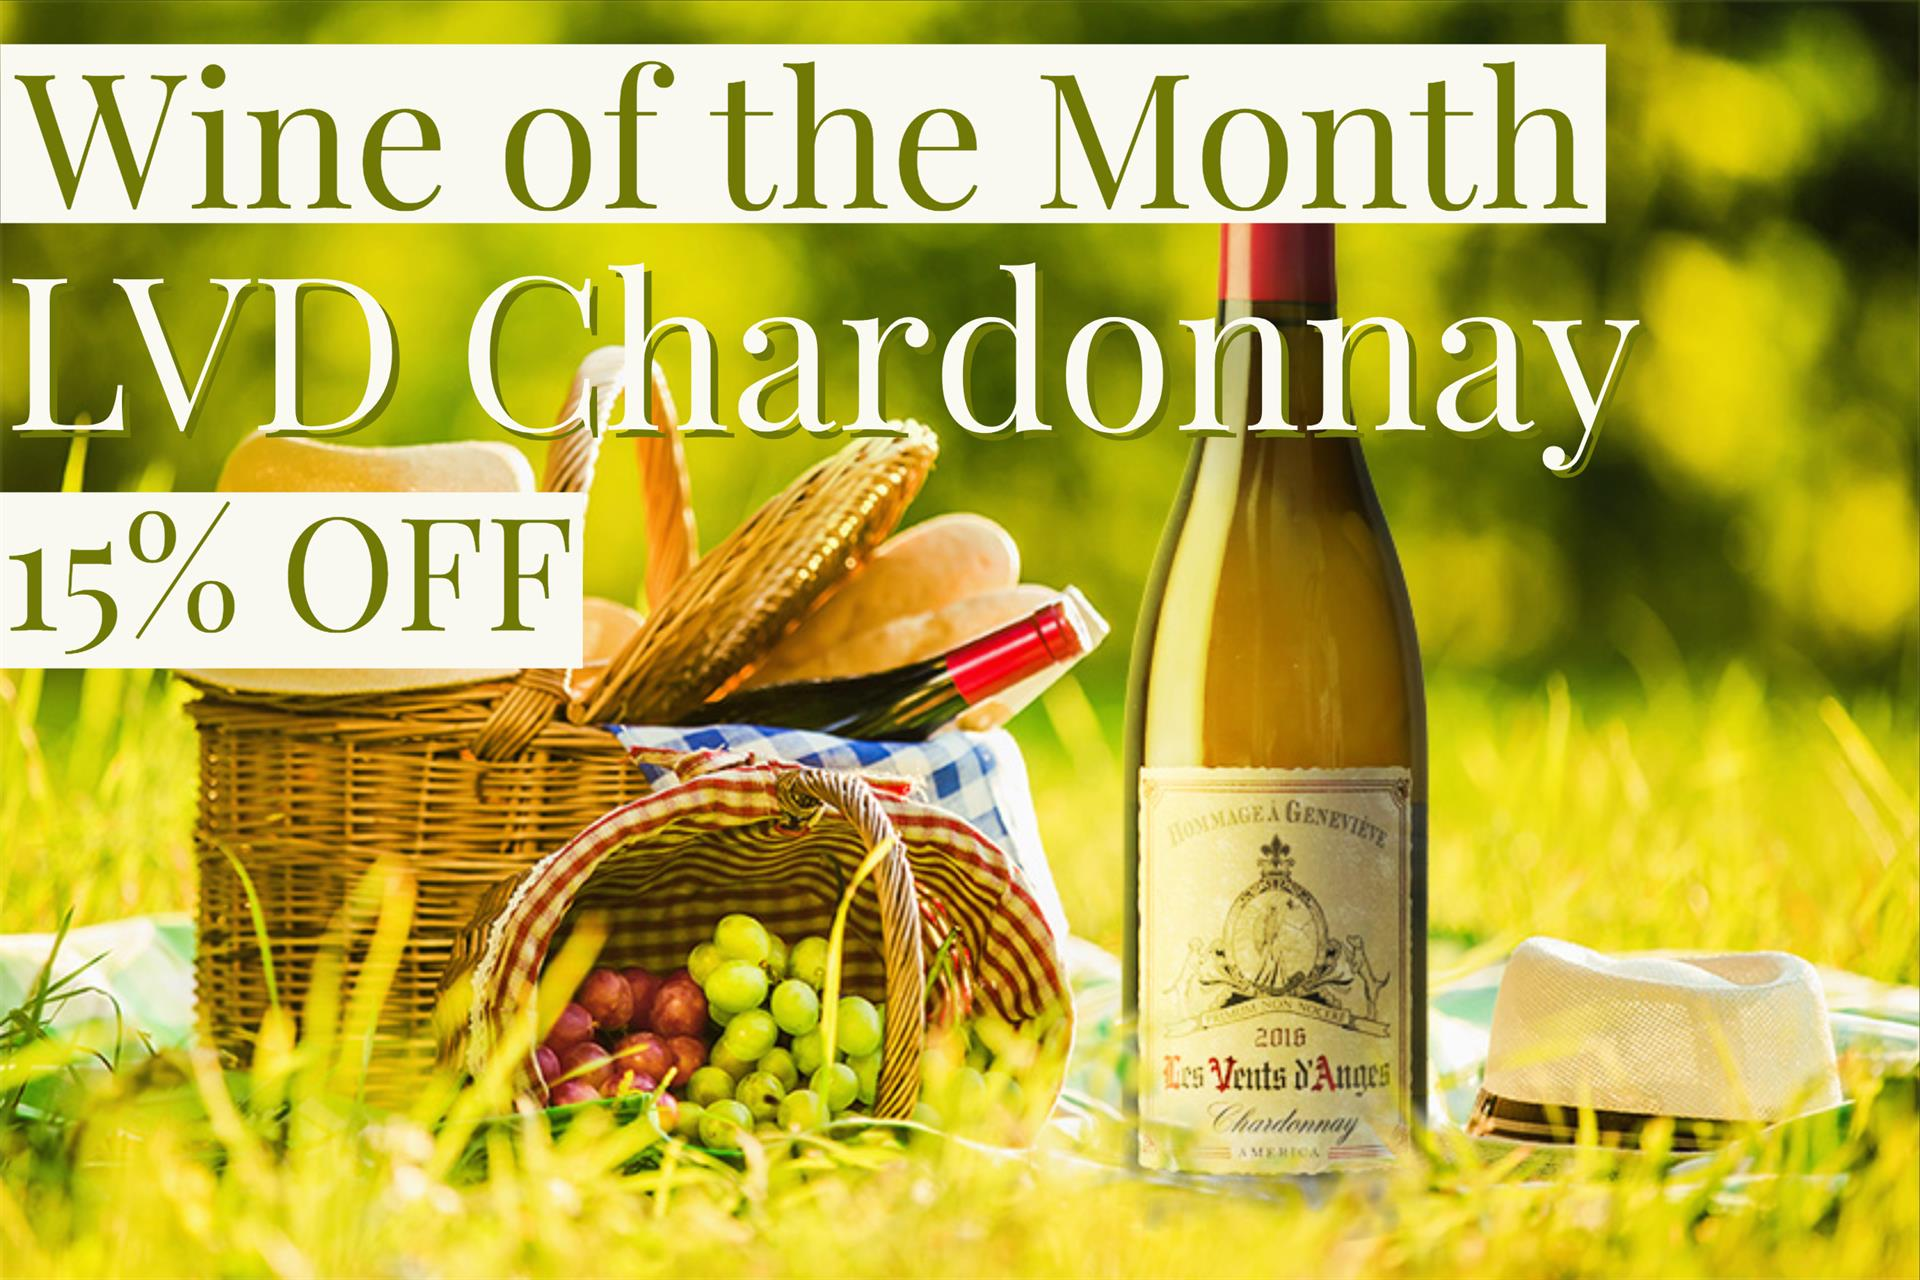 Wine of the Month Chardonnay